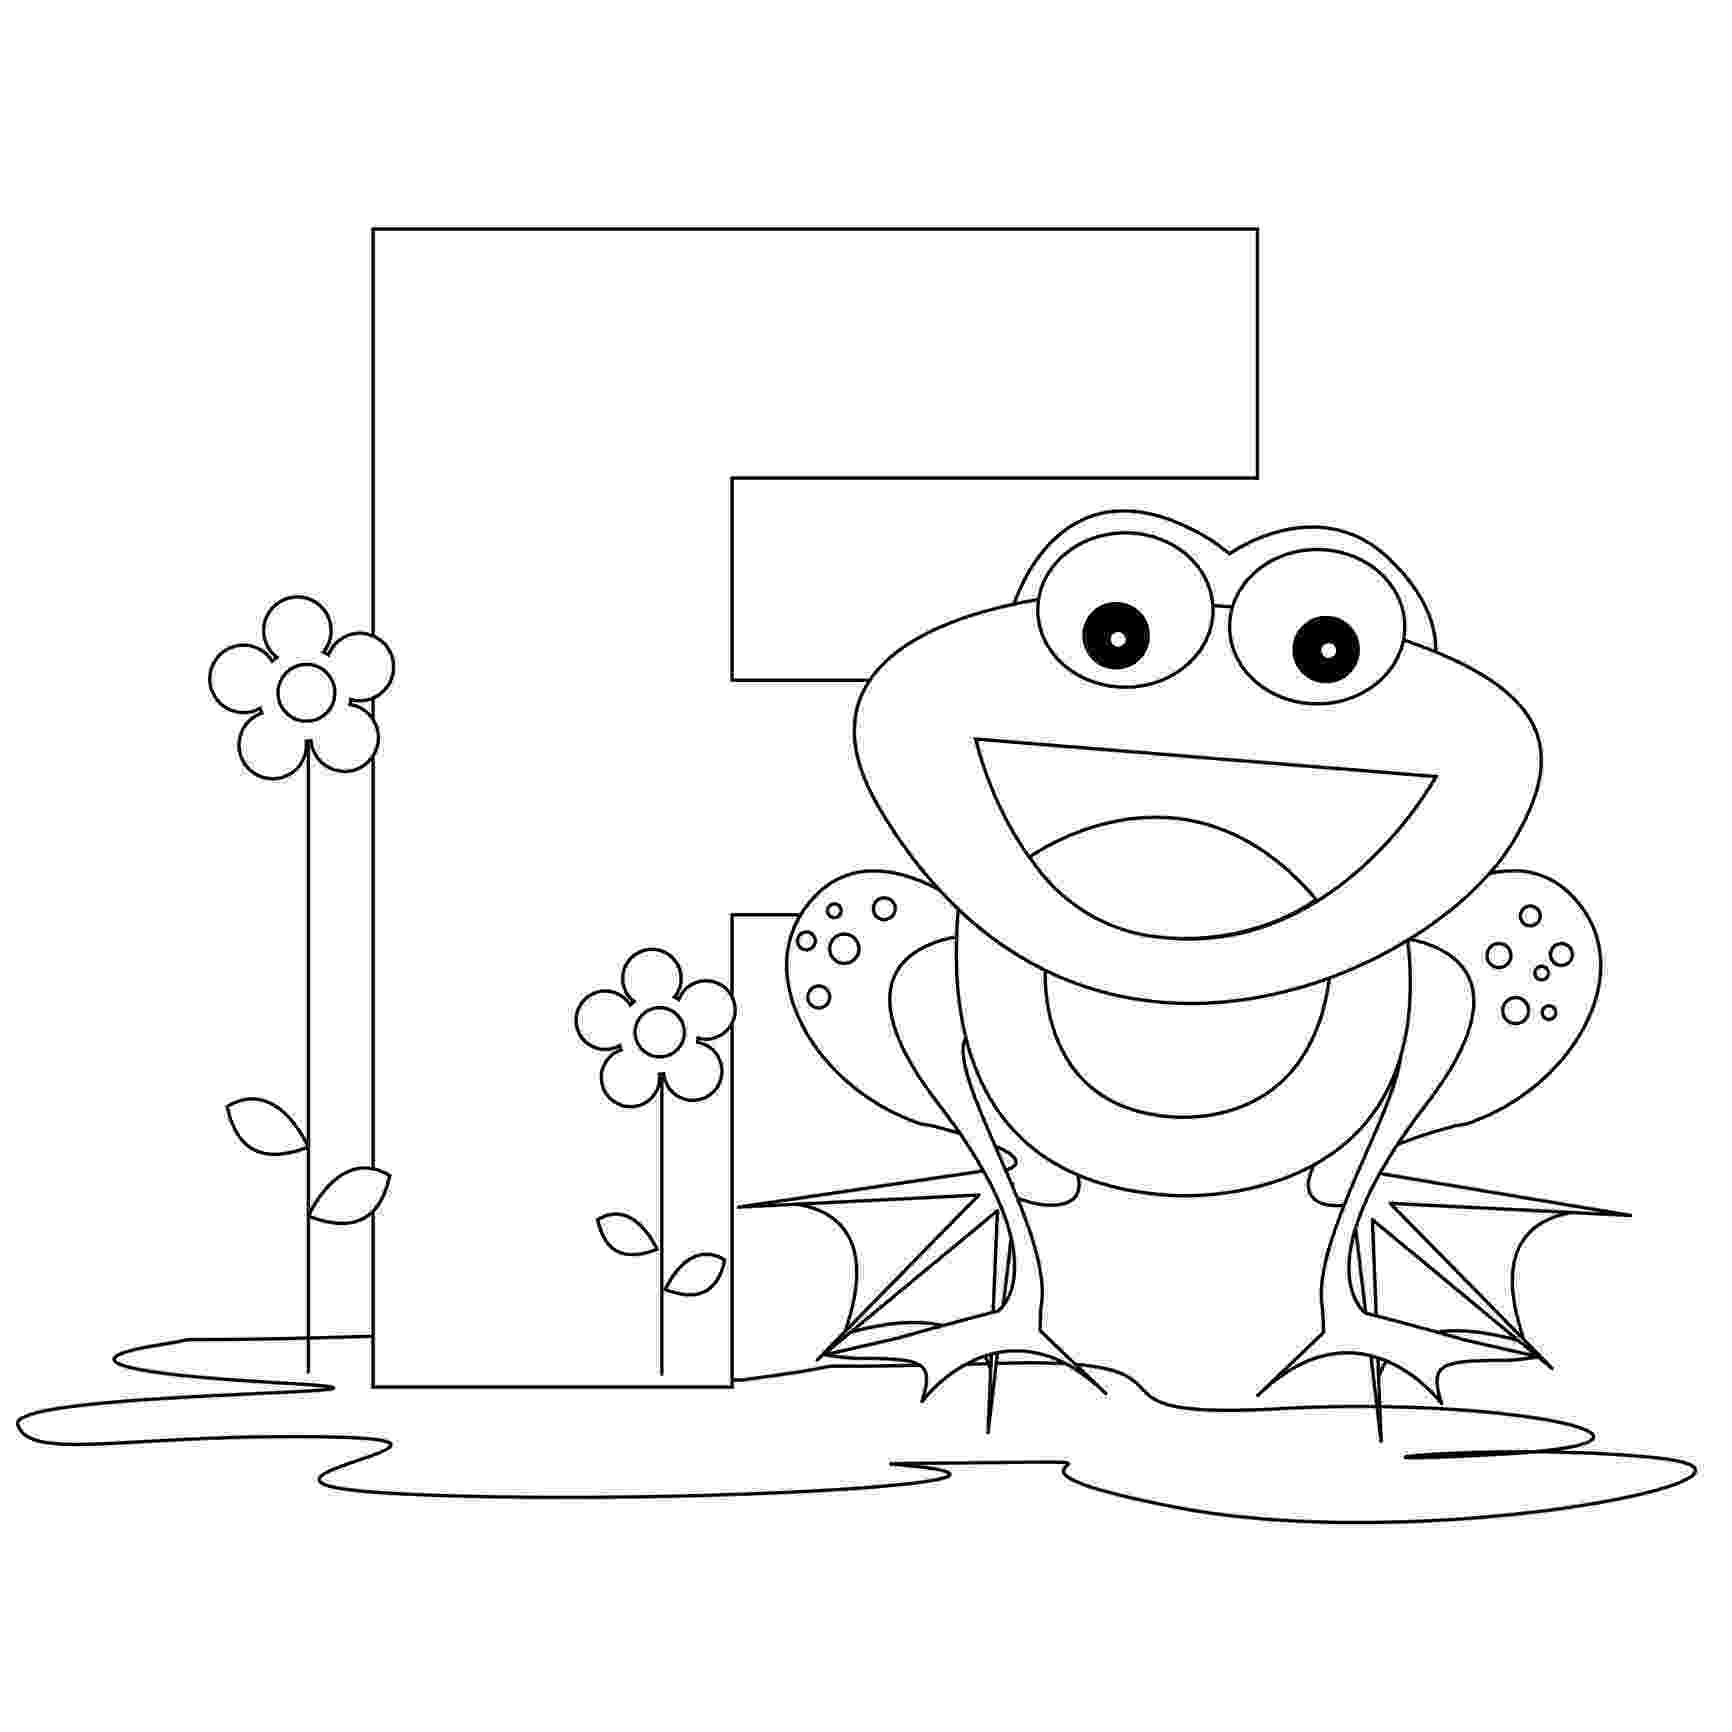 coloring pages of letters free printable alphabet coloring pages for kids best coloring of letters pages